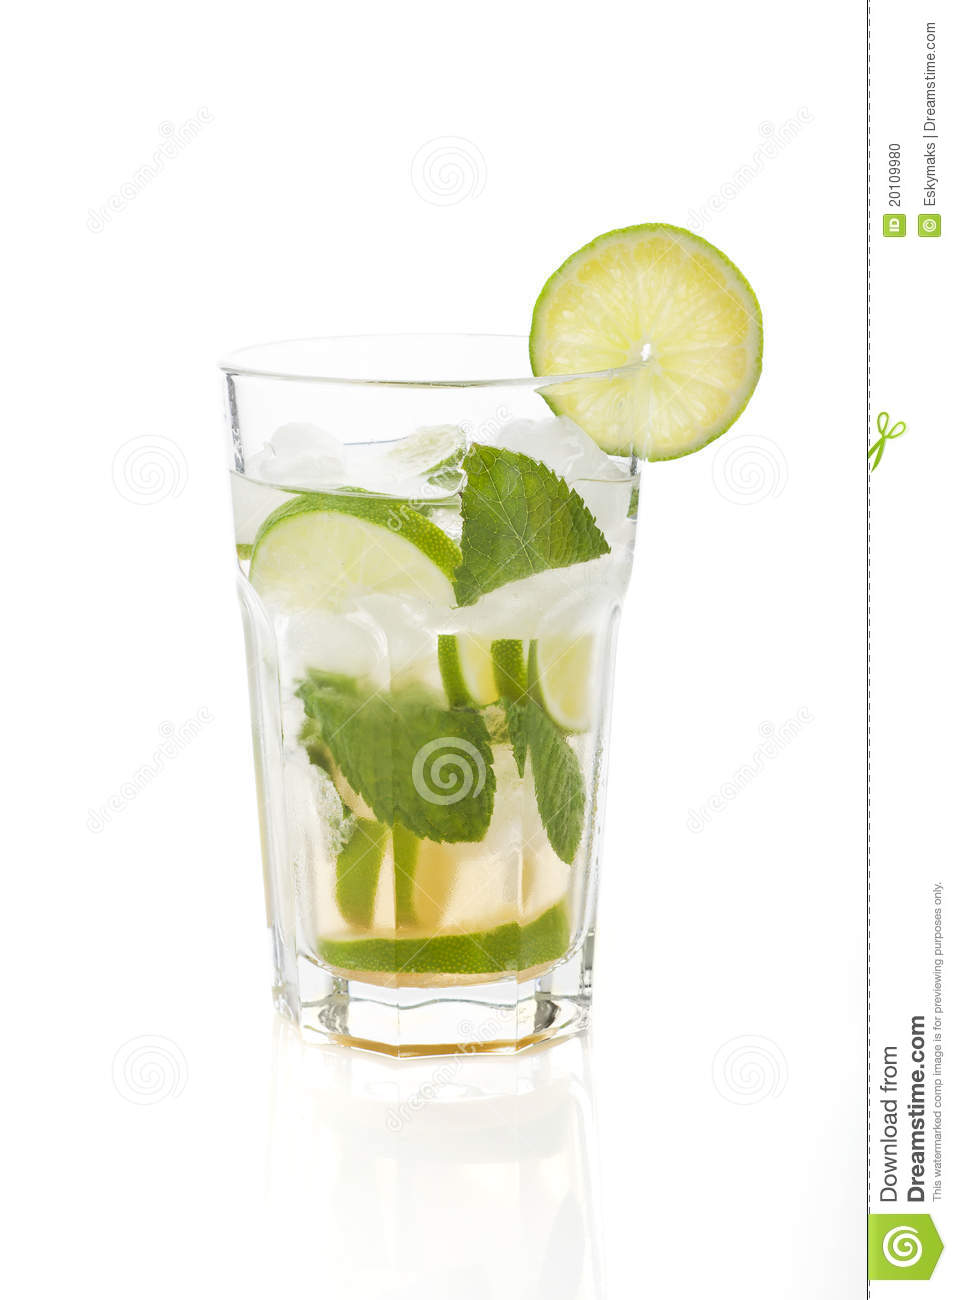 More similar stock images of ` Virgin mojito. Mocktail. `